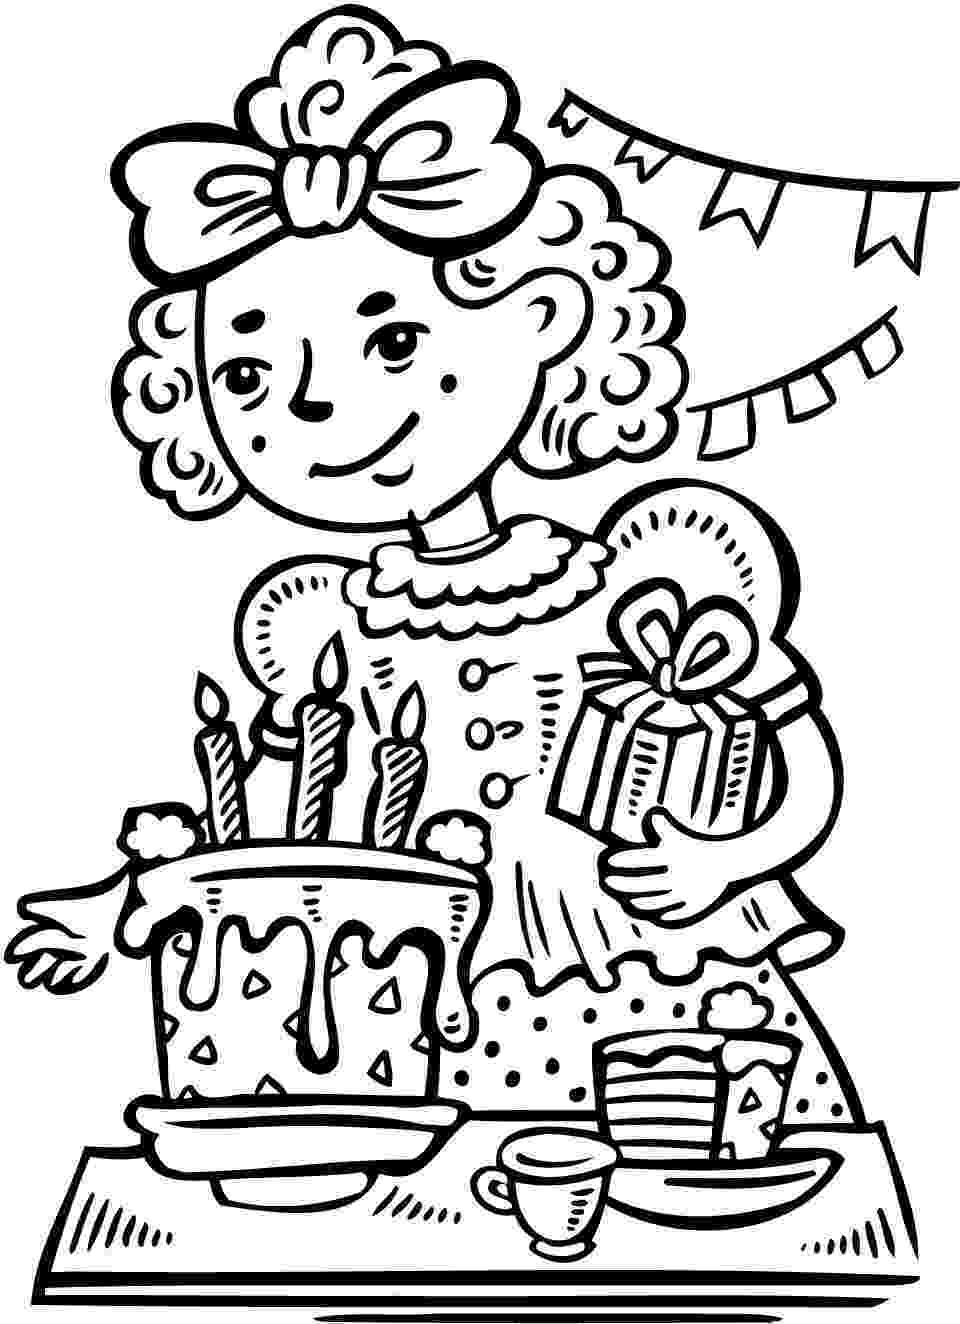 birthday party coloring page two kids smiling birthday party coloring pages netart coloring party birthday page